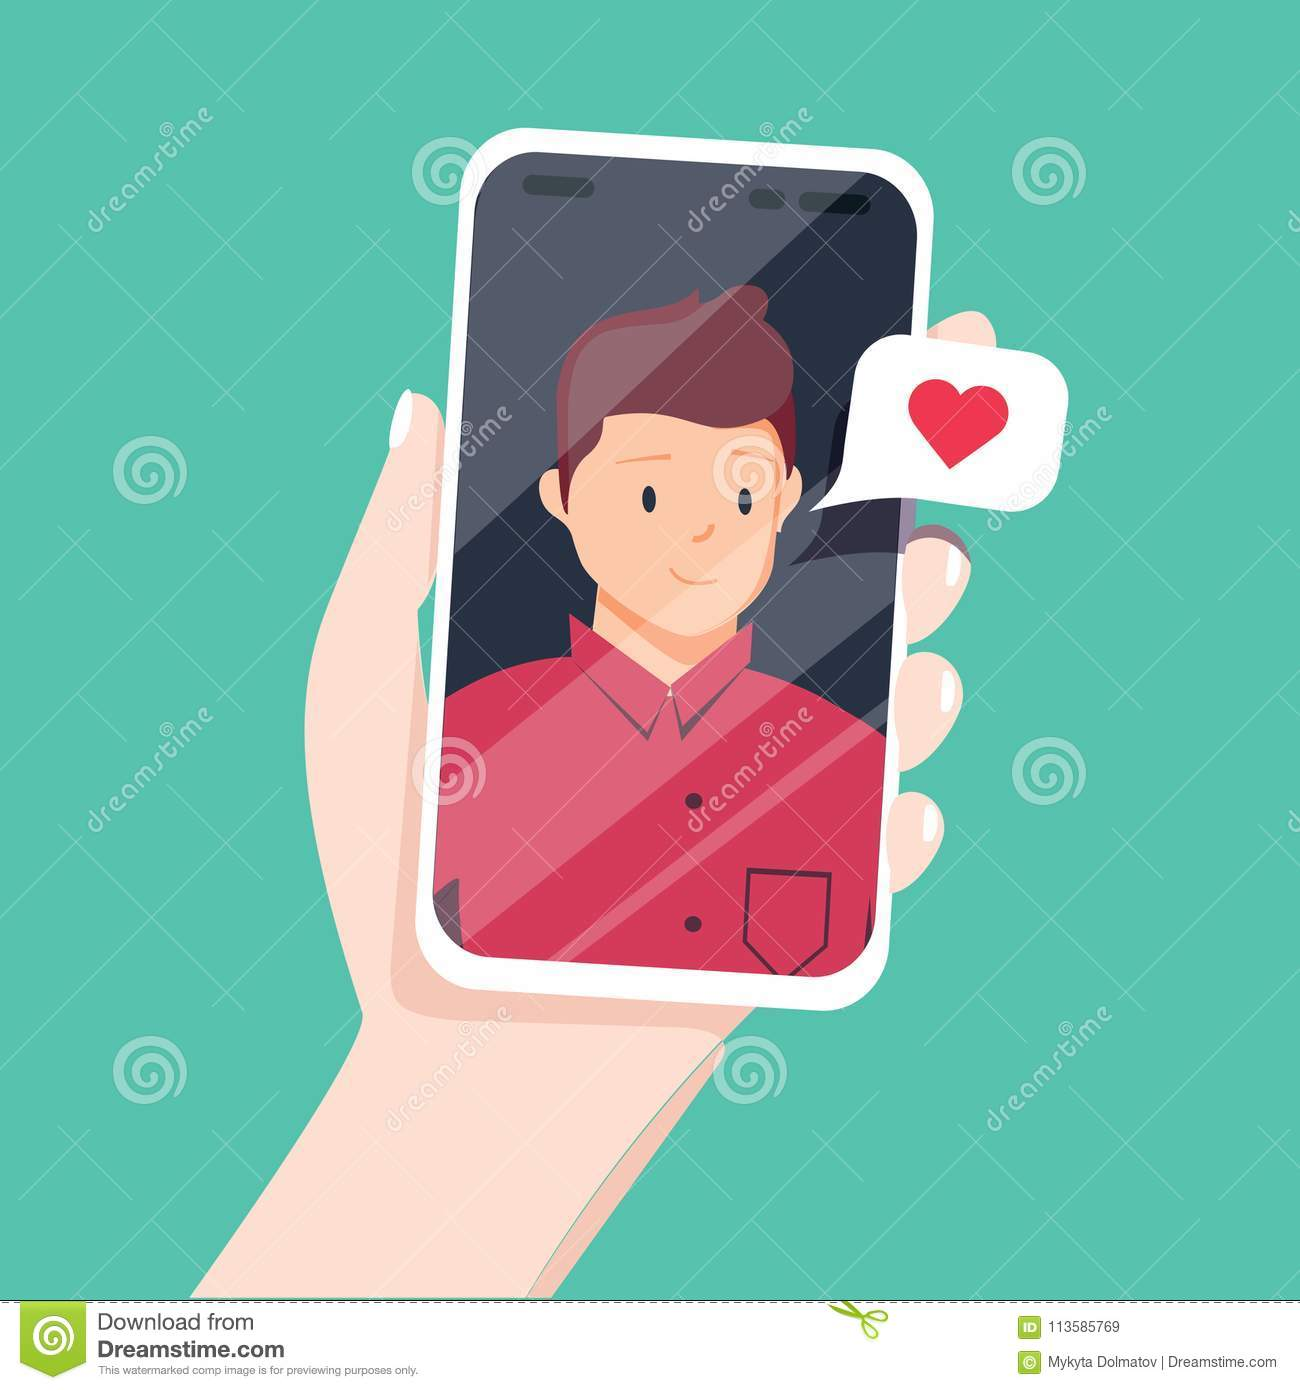 Video Call With Loved One  Female Hand Holding Smartphone